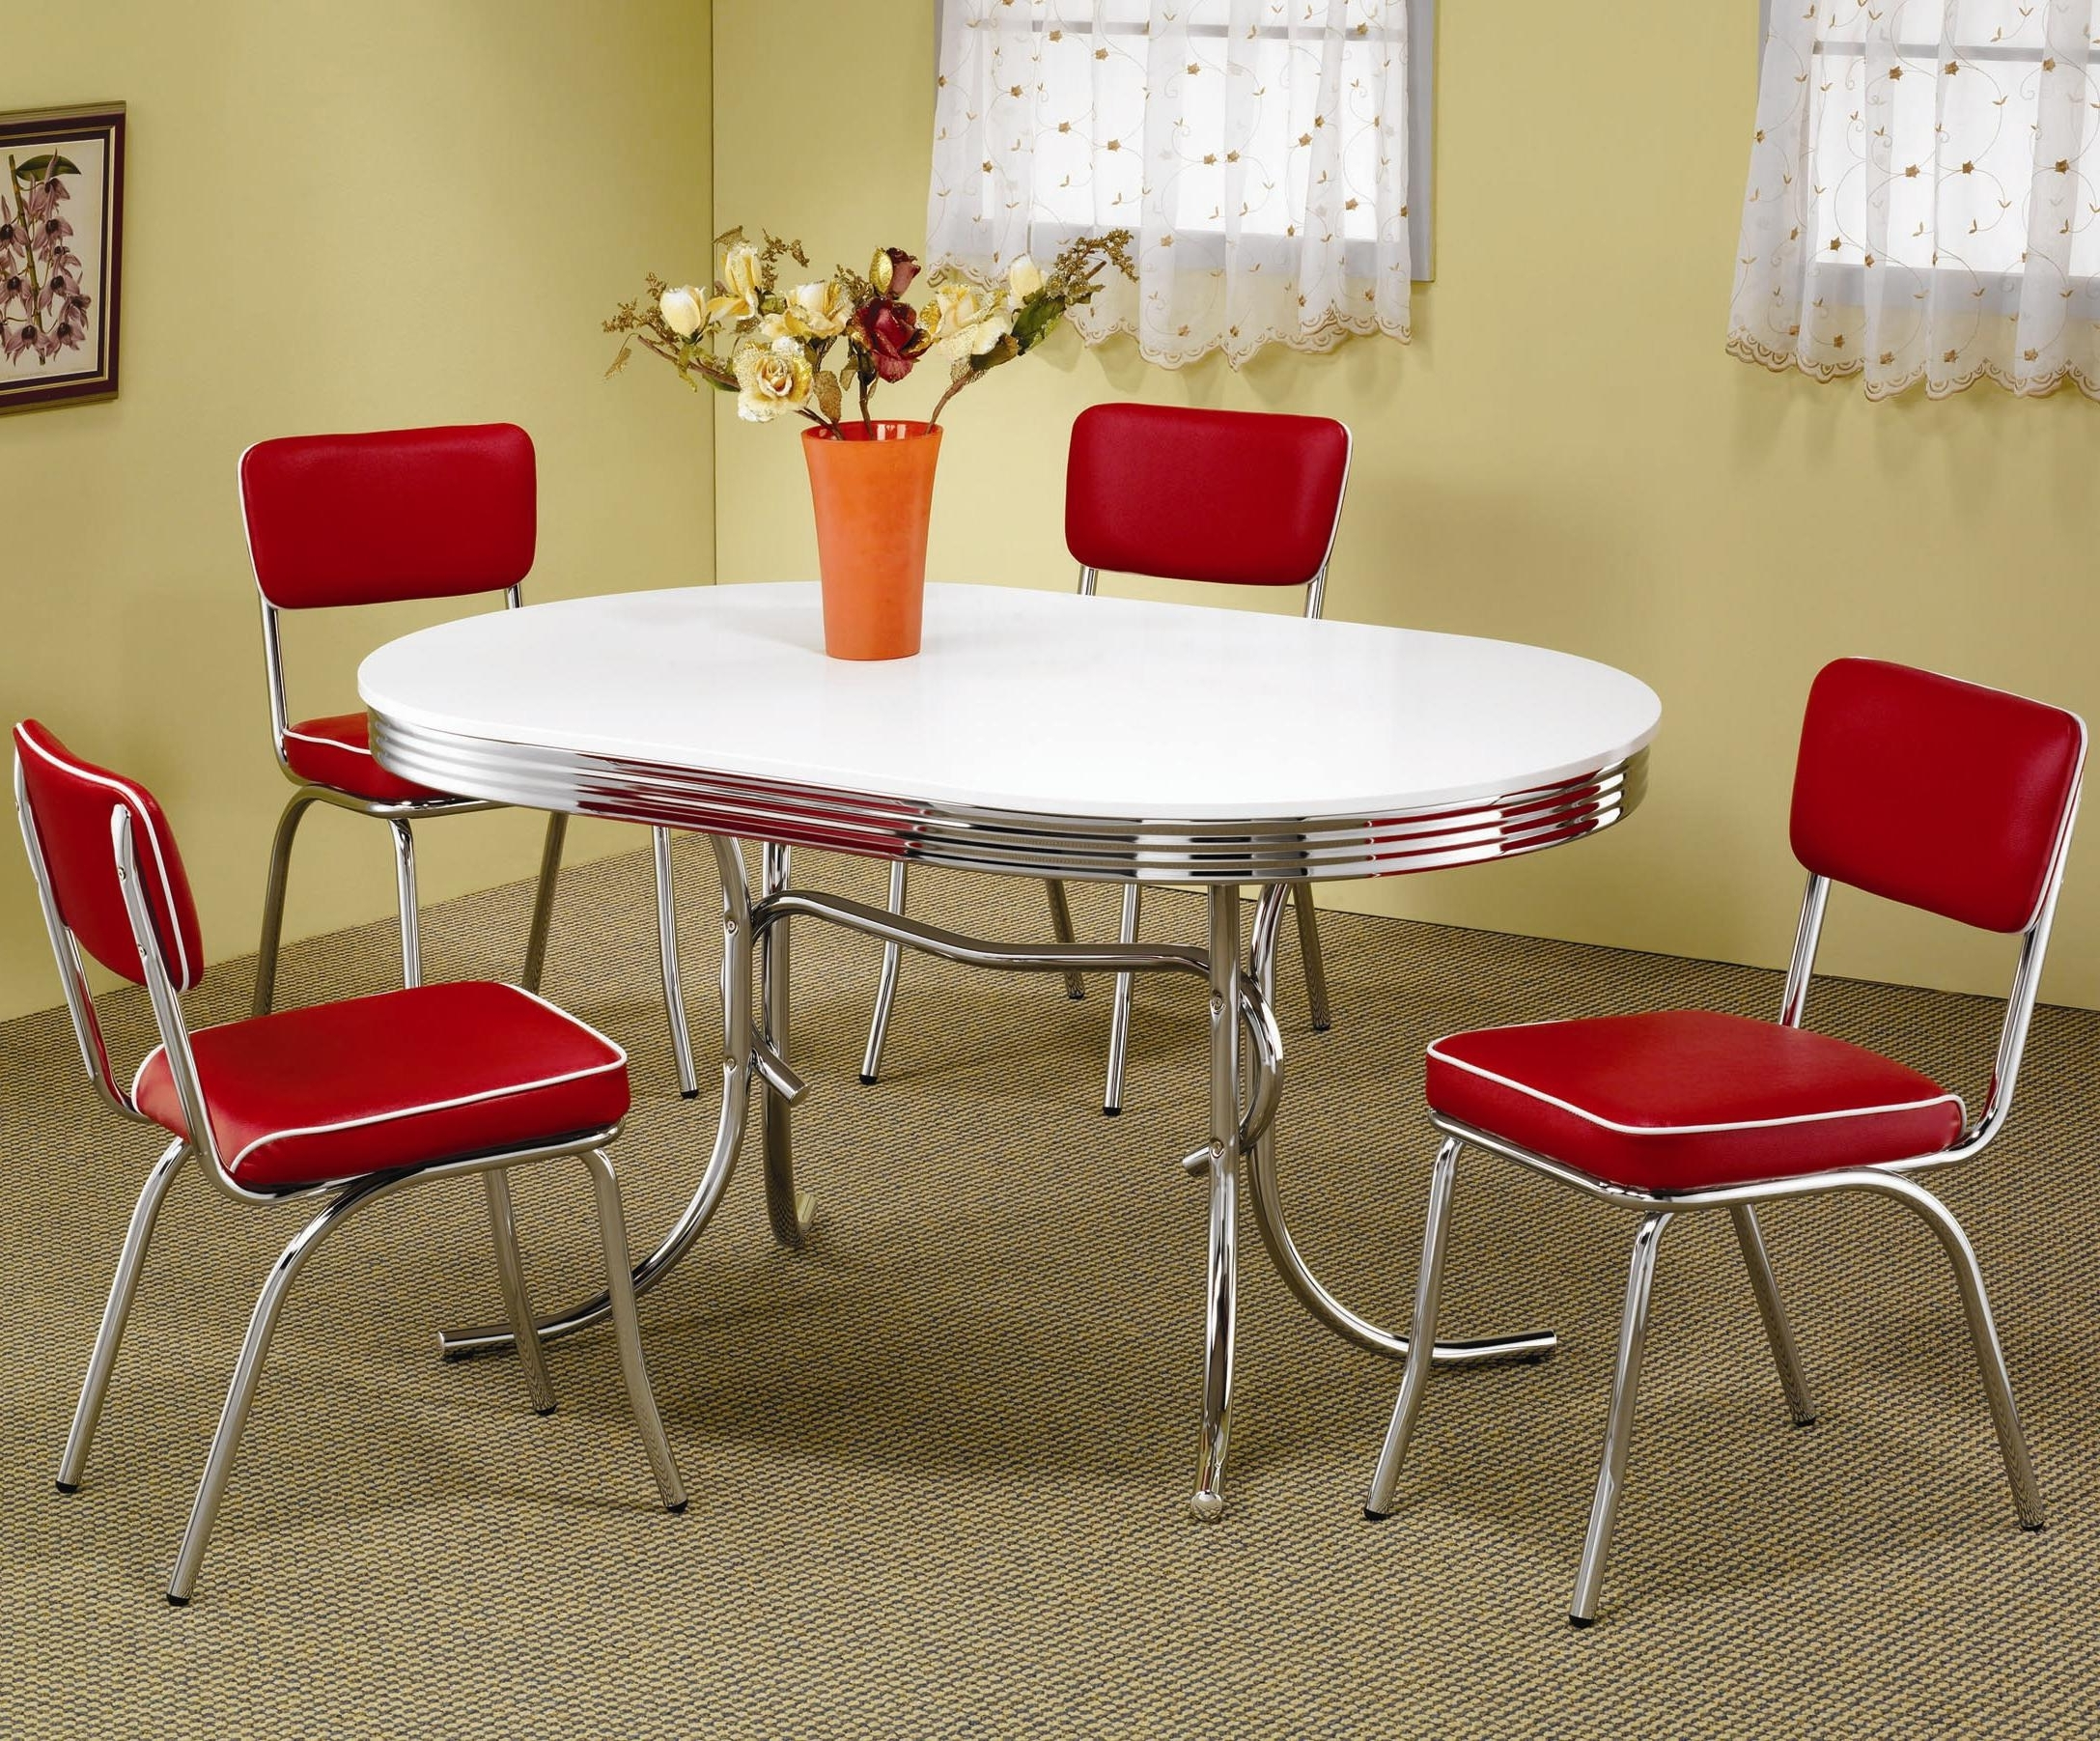 Value City Intended For Chrome Dining Sets (View 23 of 25)